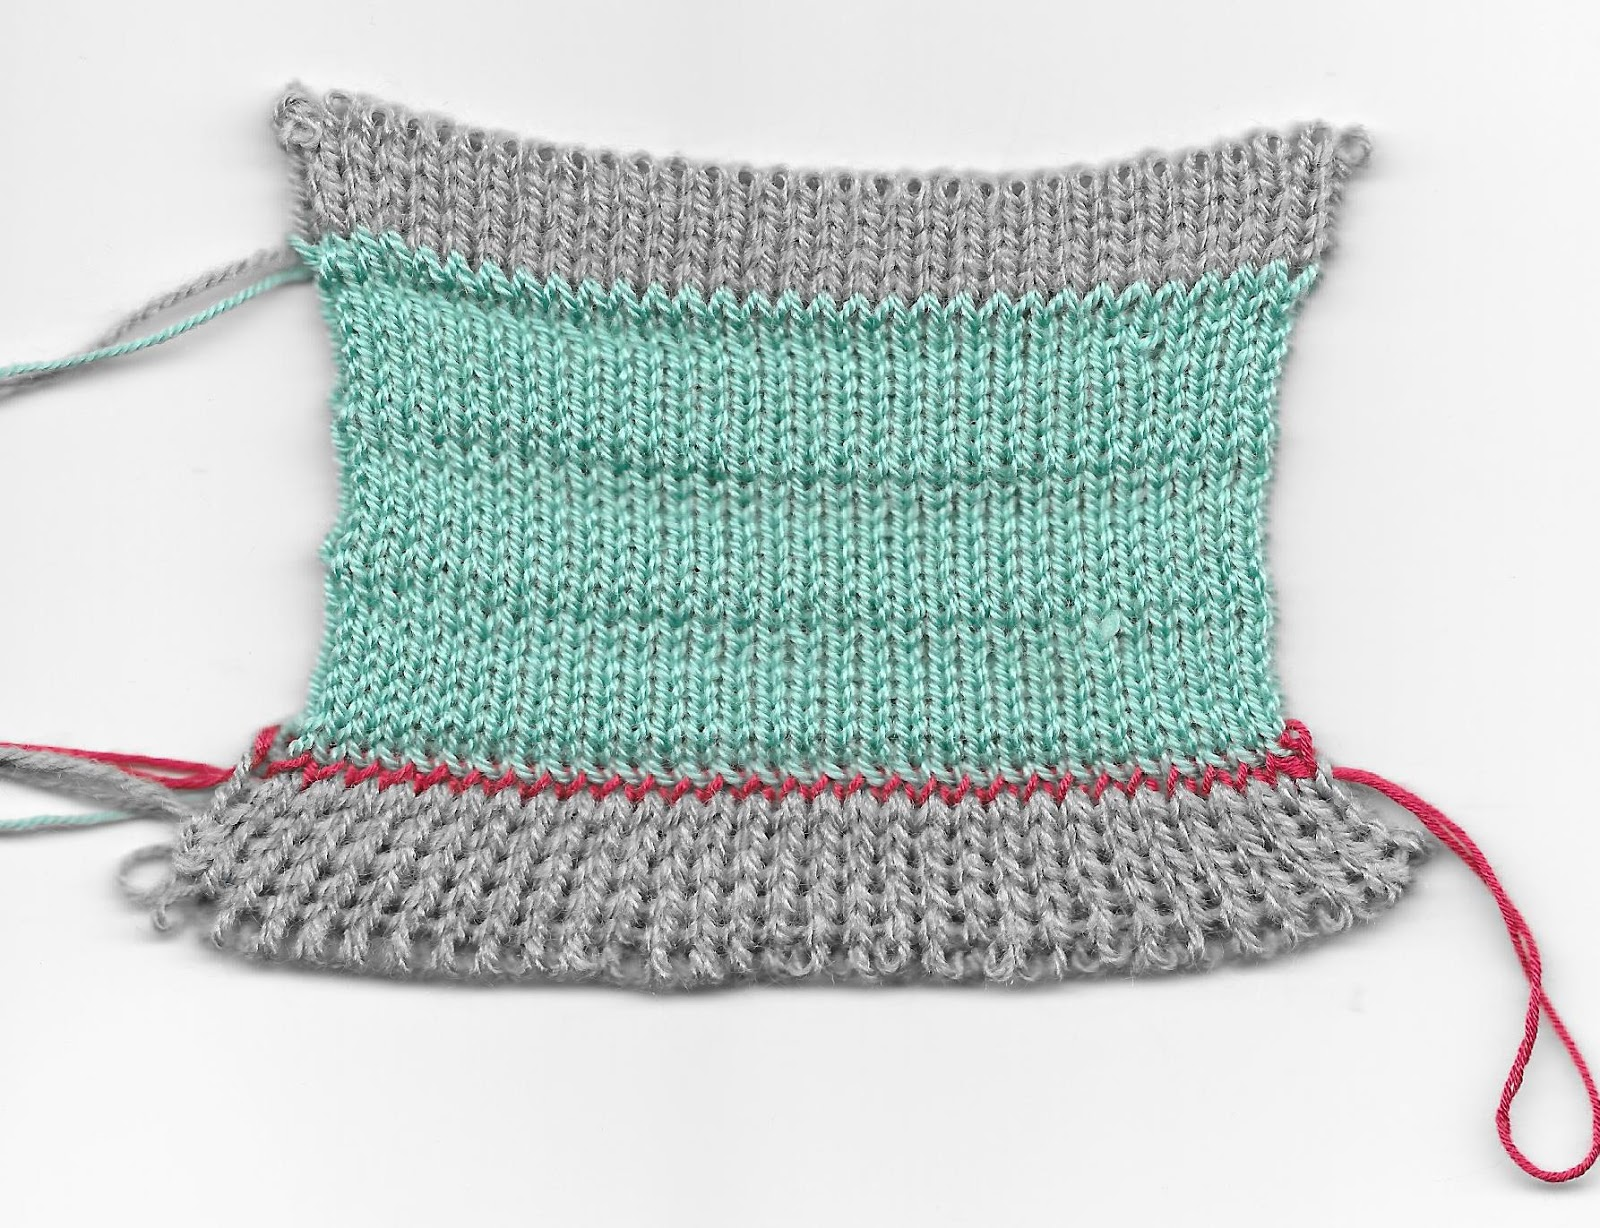 Knitting Rib Stitch On Circular Needles : Needles to say are you up for a challenge